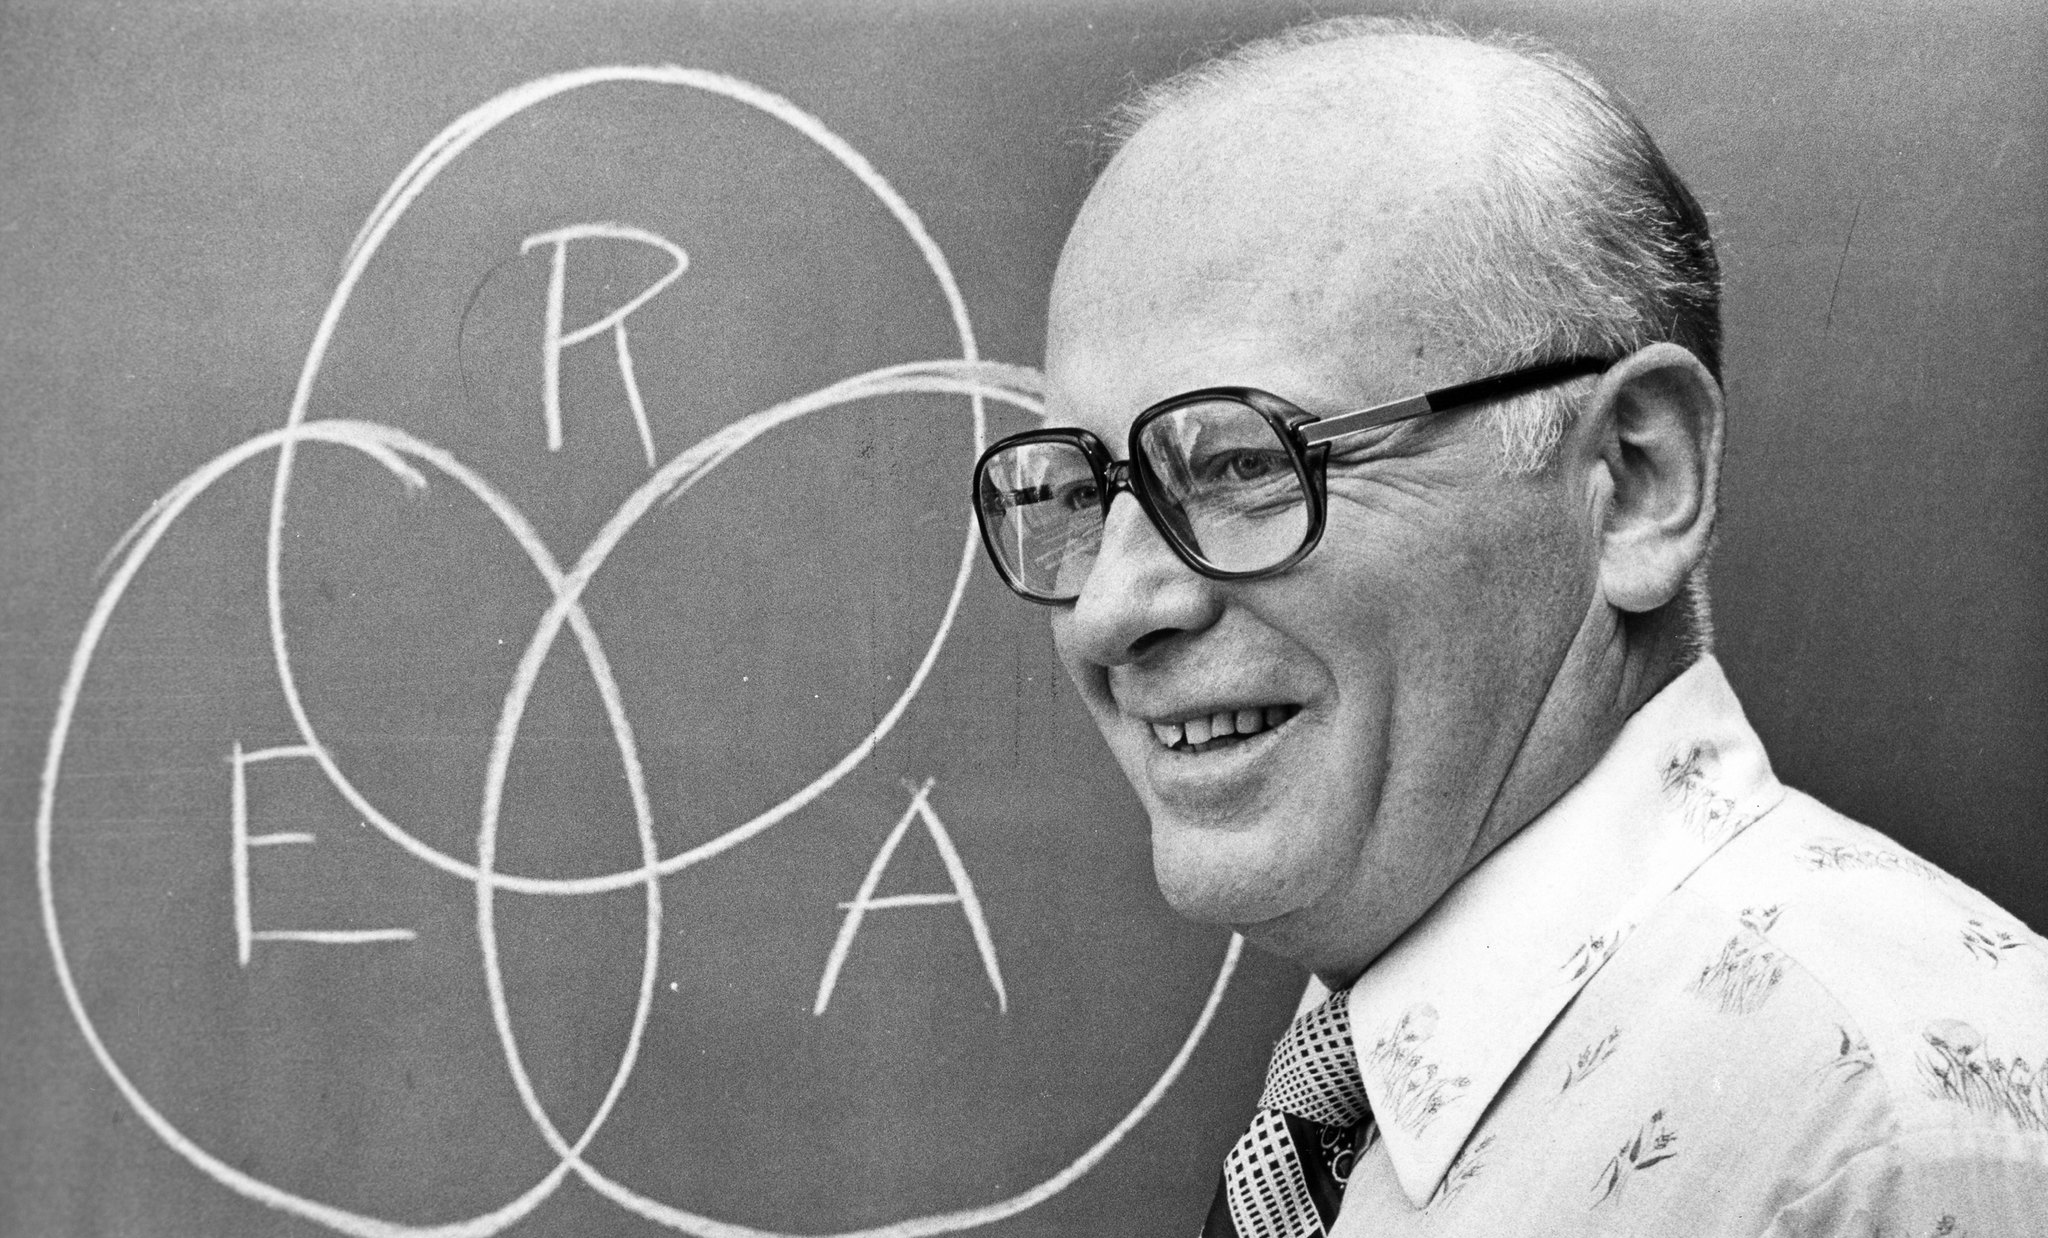 Historic photo of Bill Wick standing in front of a black board wtih the large letters R, E and A written on it.